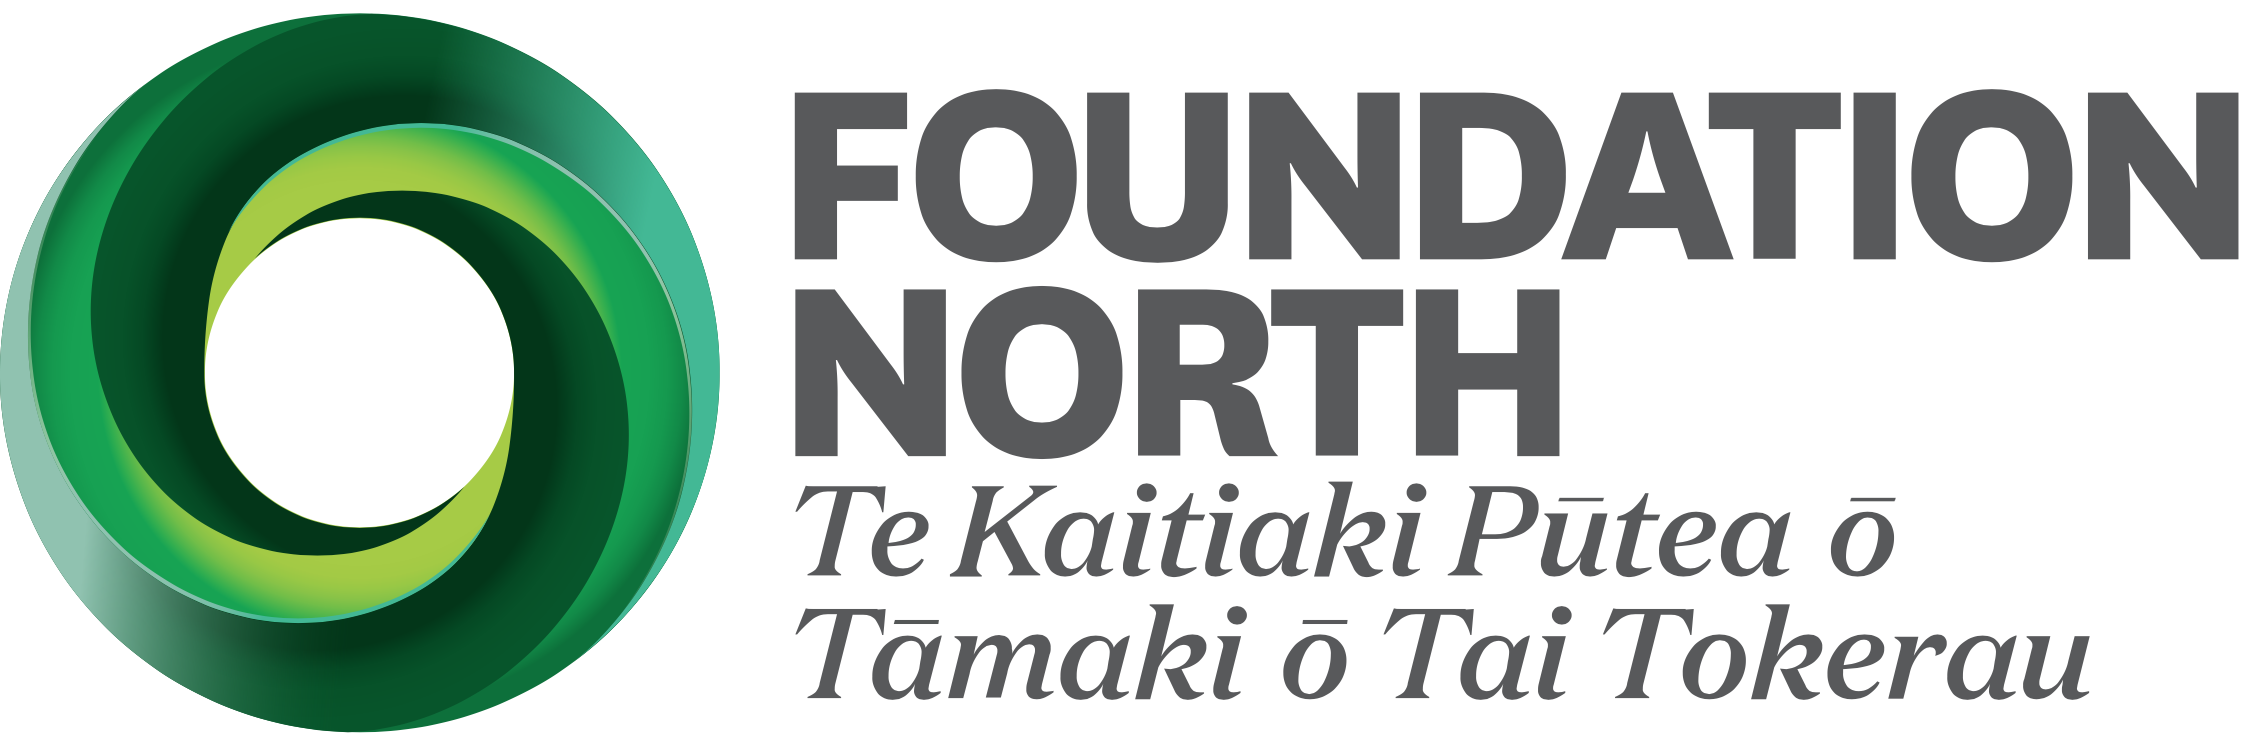 Foundation-North-logo.png